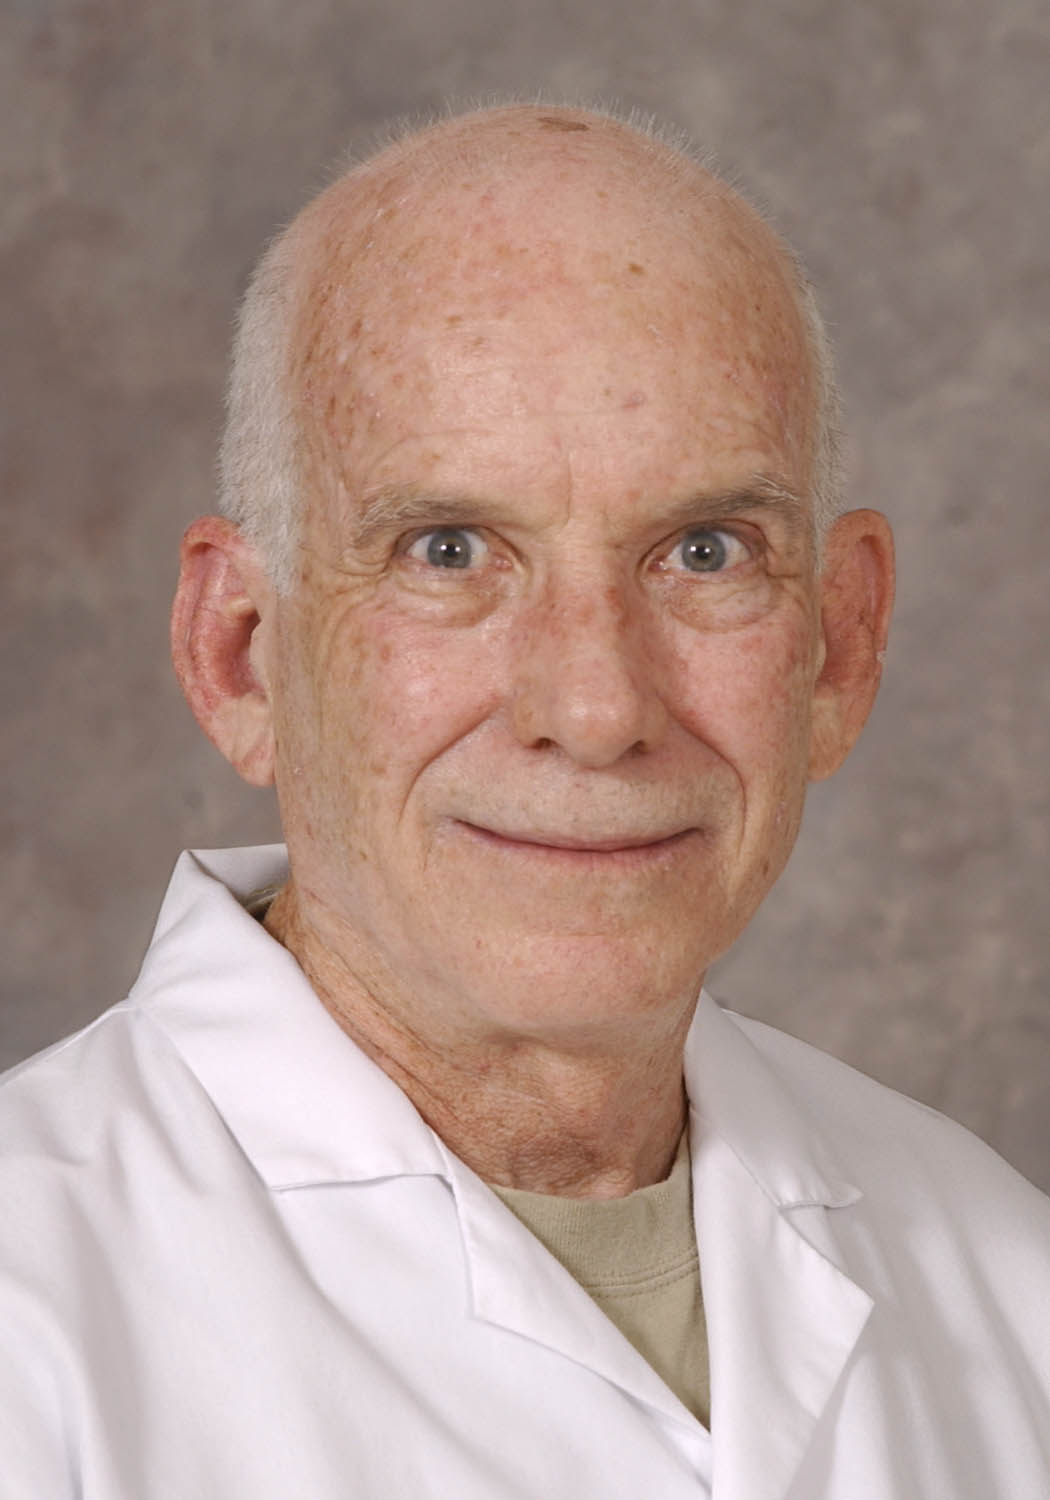 Michael McChesney, M.D.